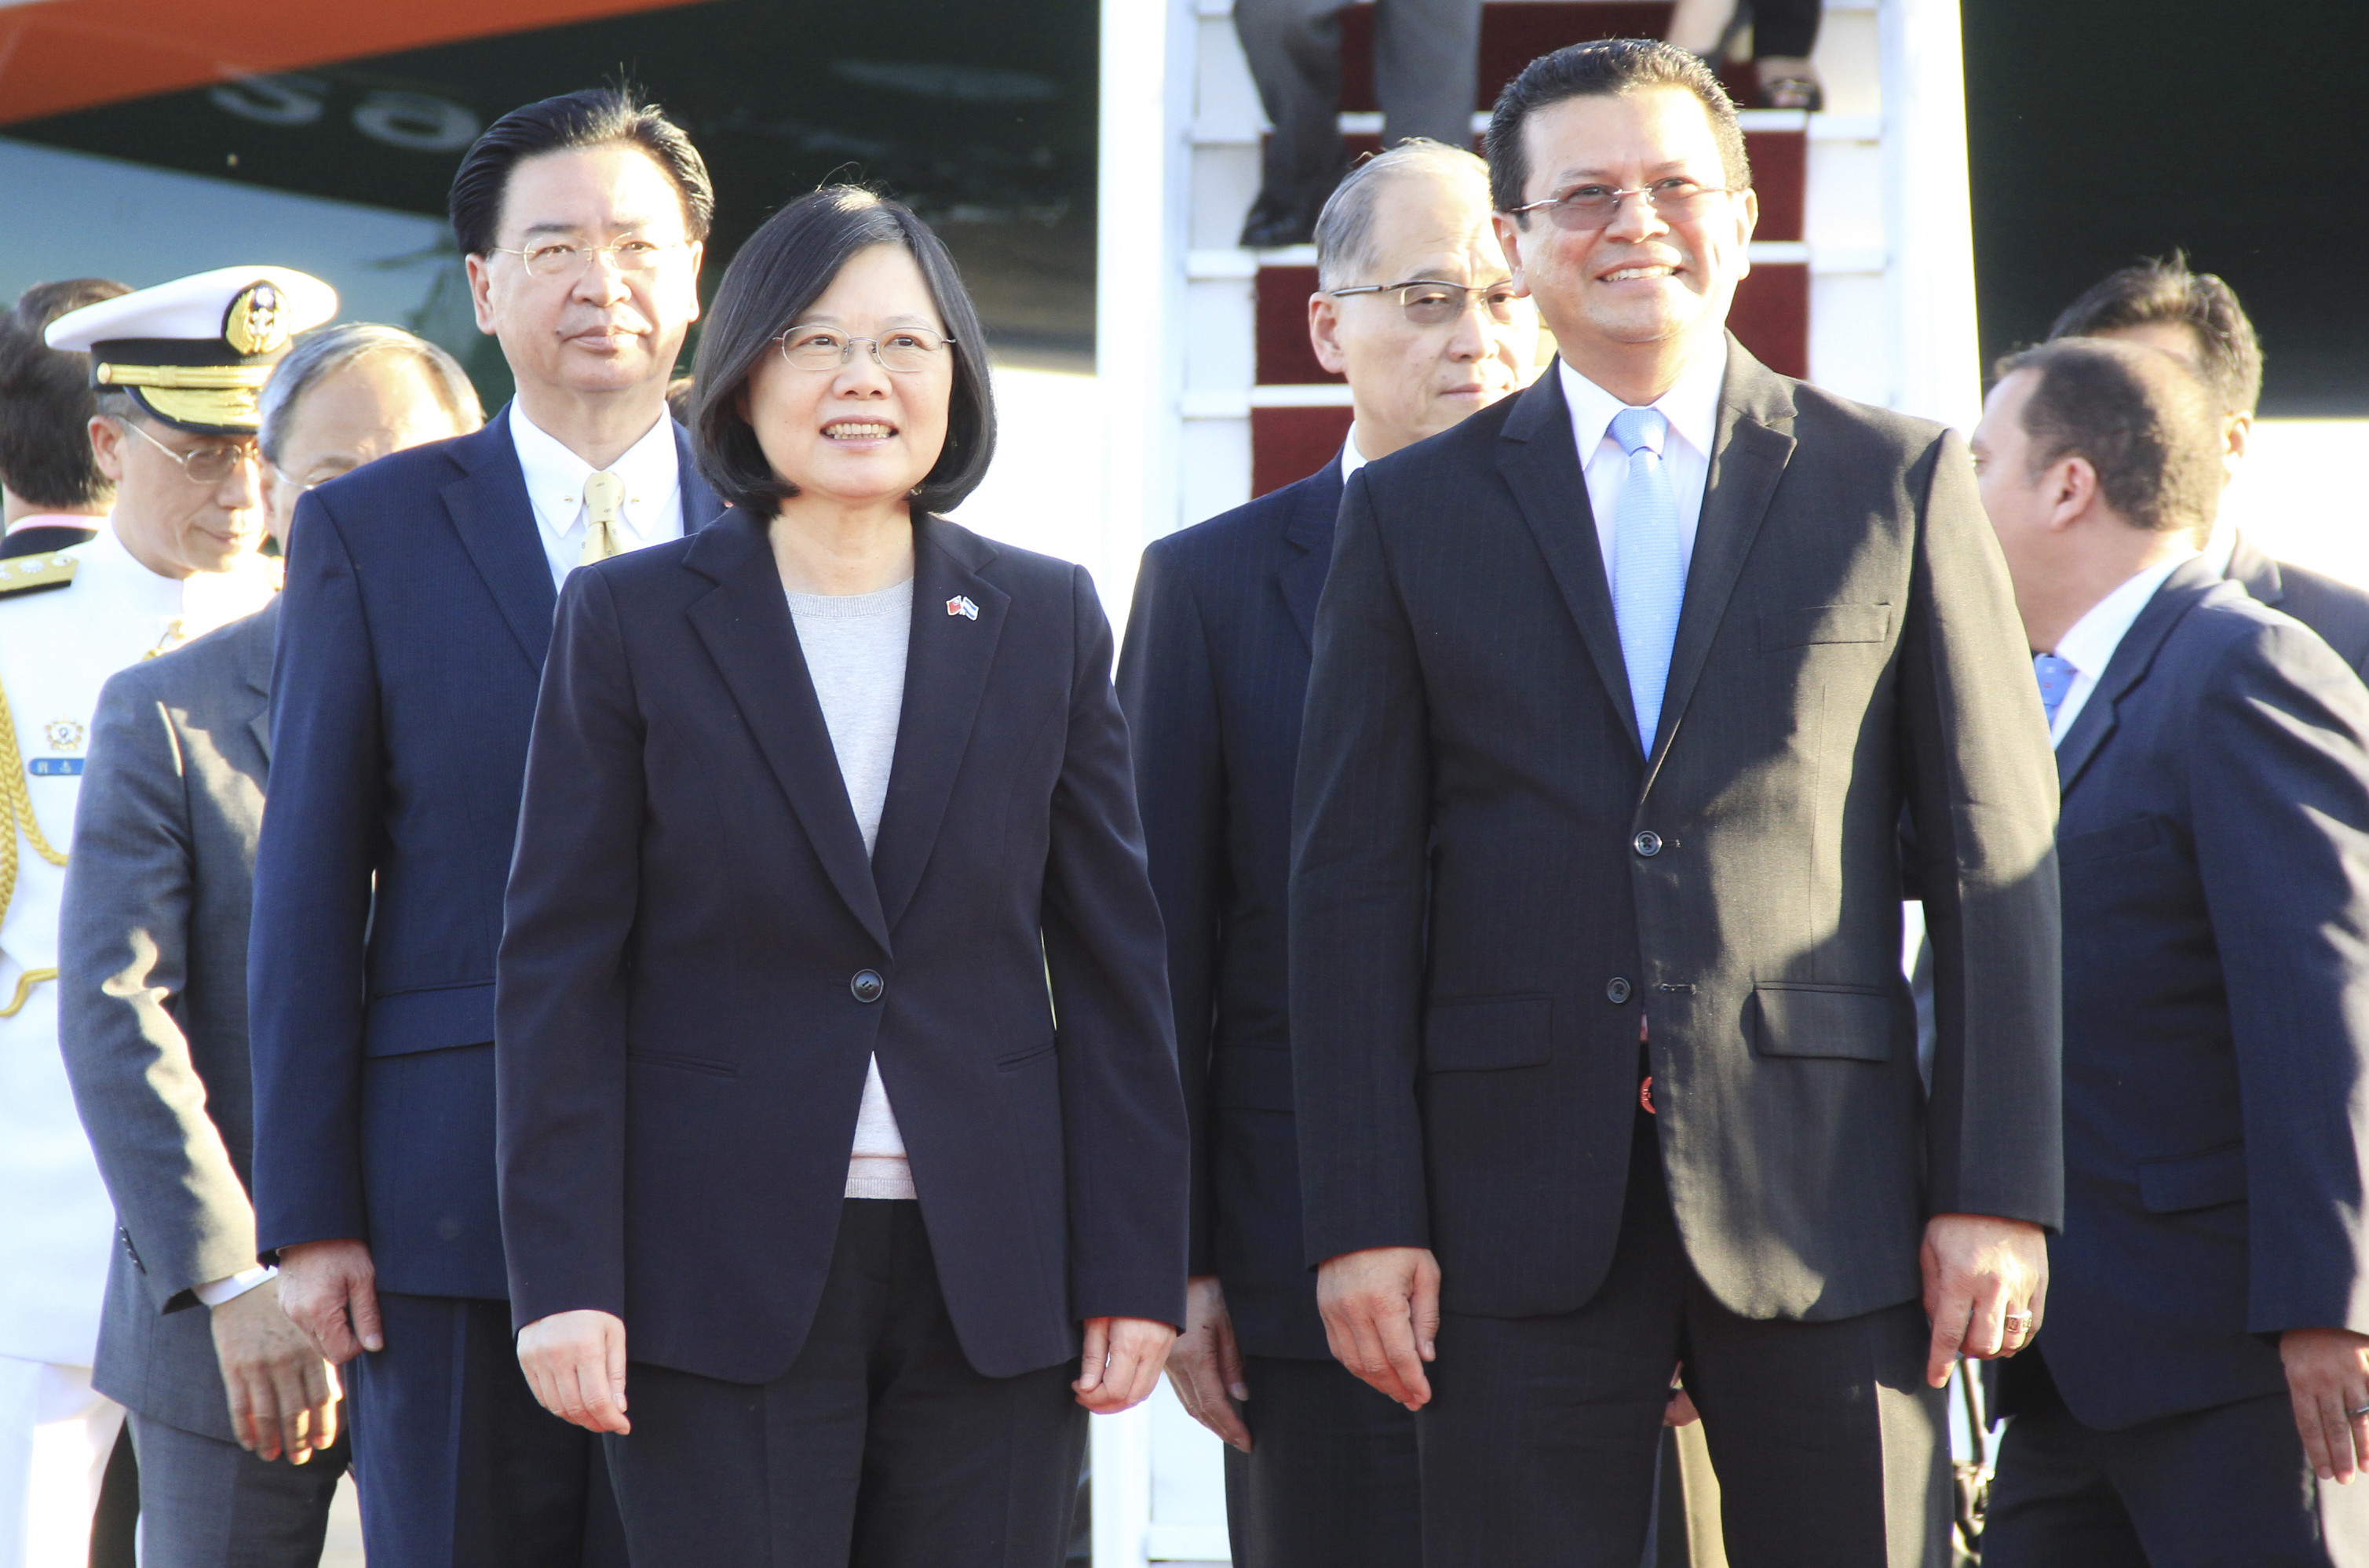 In this handout photo provided by the Salvadorian Chancery, Tsai Ing-wen, President of Taiwan, left, and the Chancellor of the Republic of El Salvador, Hugo Martínez, look on during her arrival at the Óscar Arnulfo Romero International Airport on Jan. 12, 2017, in La Paz, El Salvador